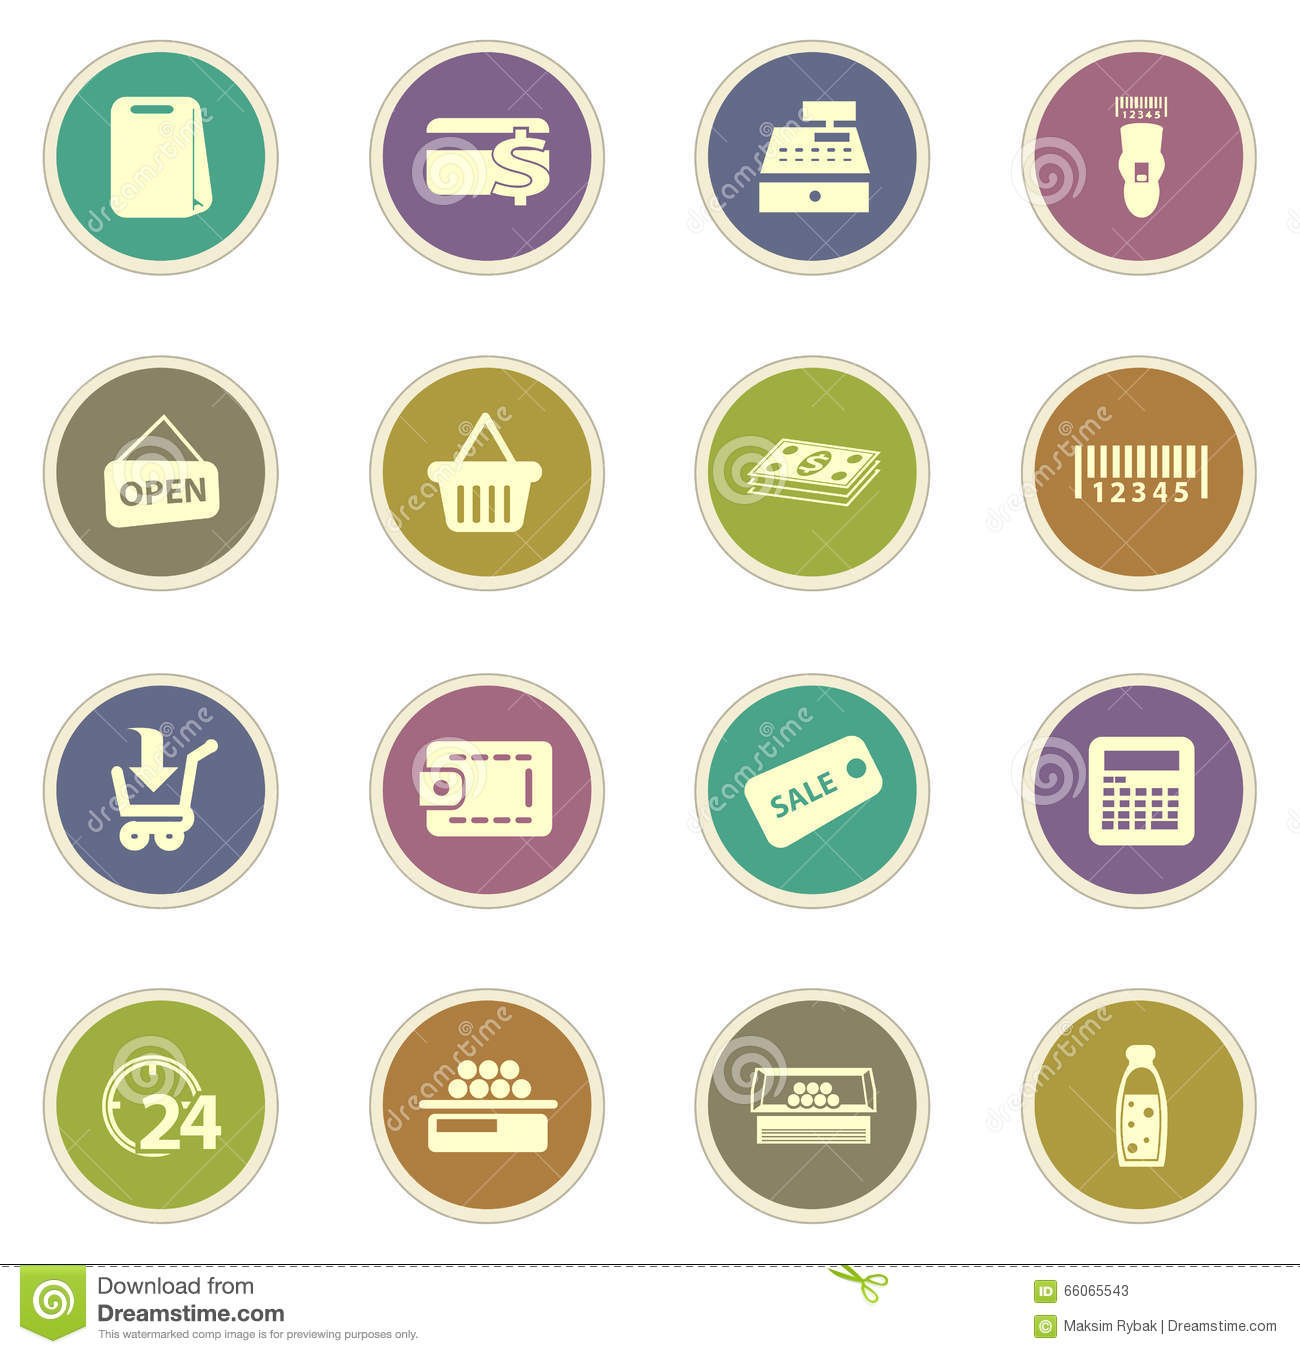 Grocery Store Icon Stock Photo - Image: 66065543